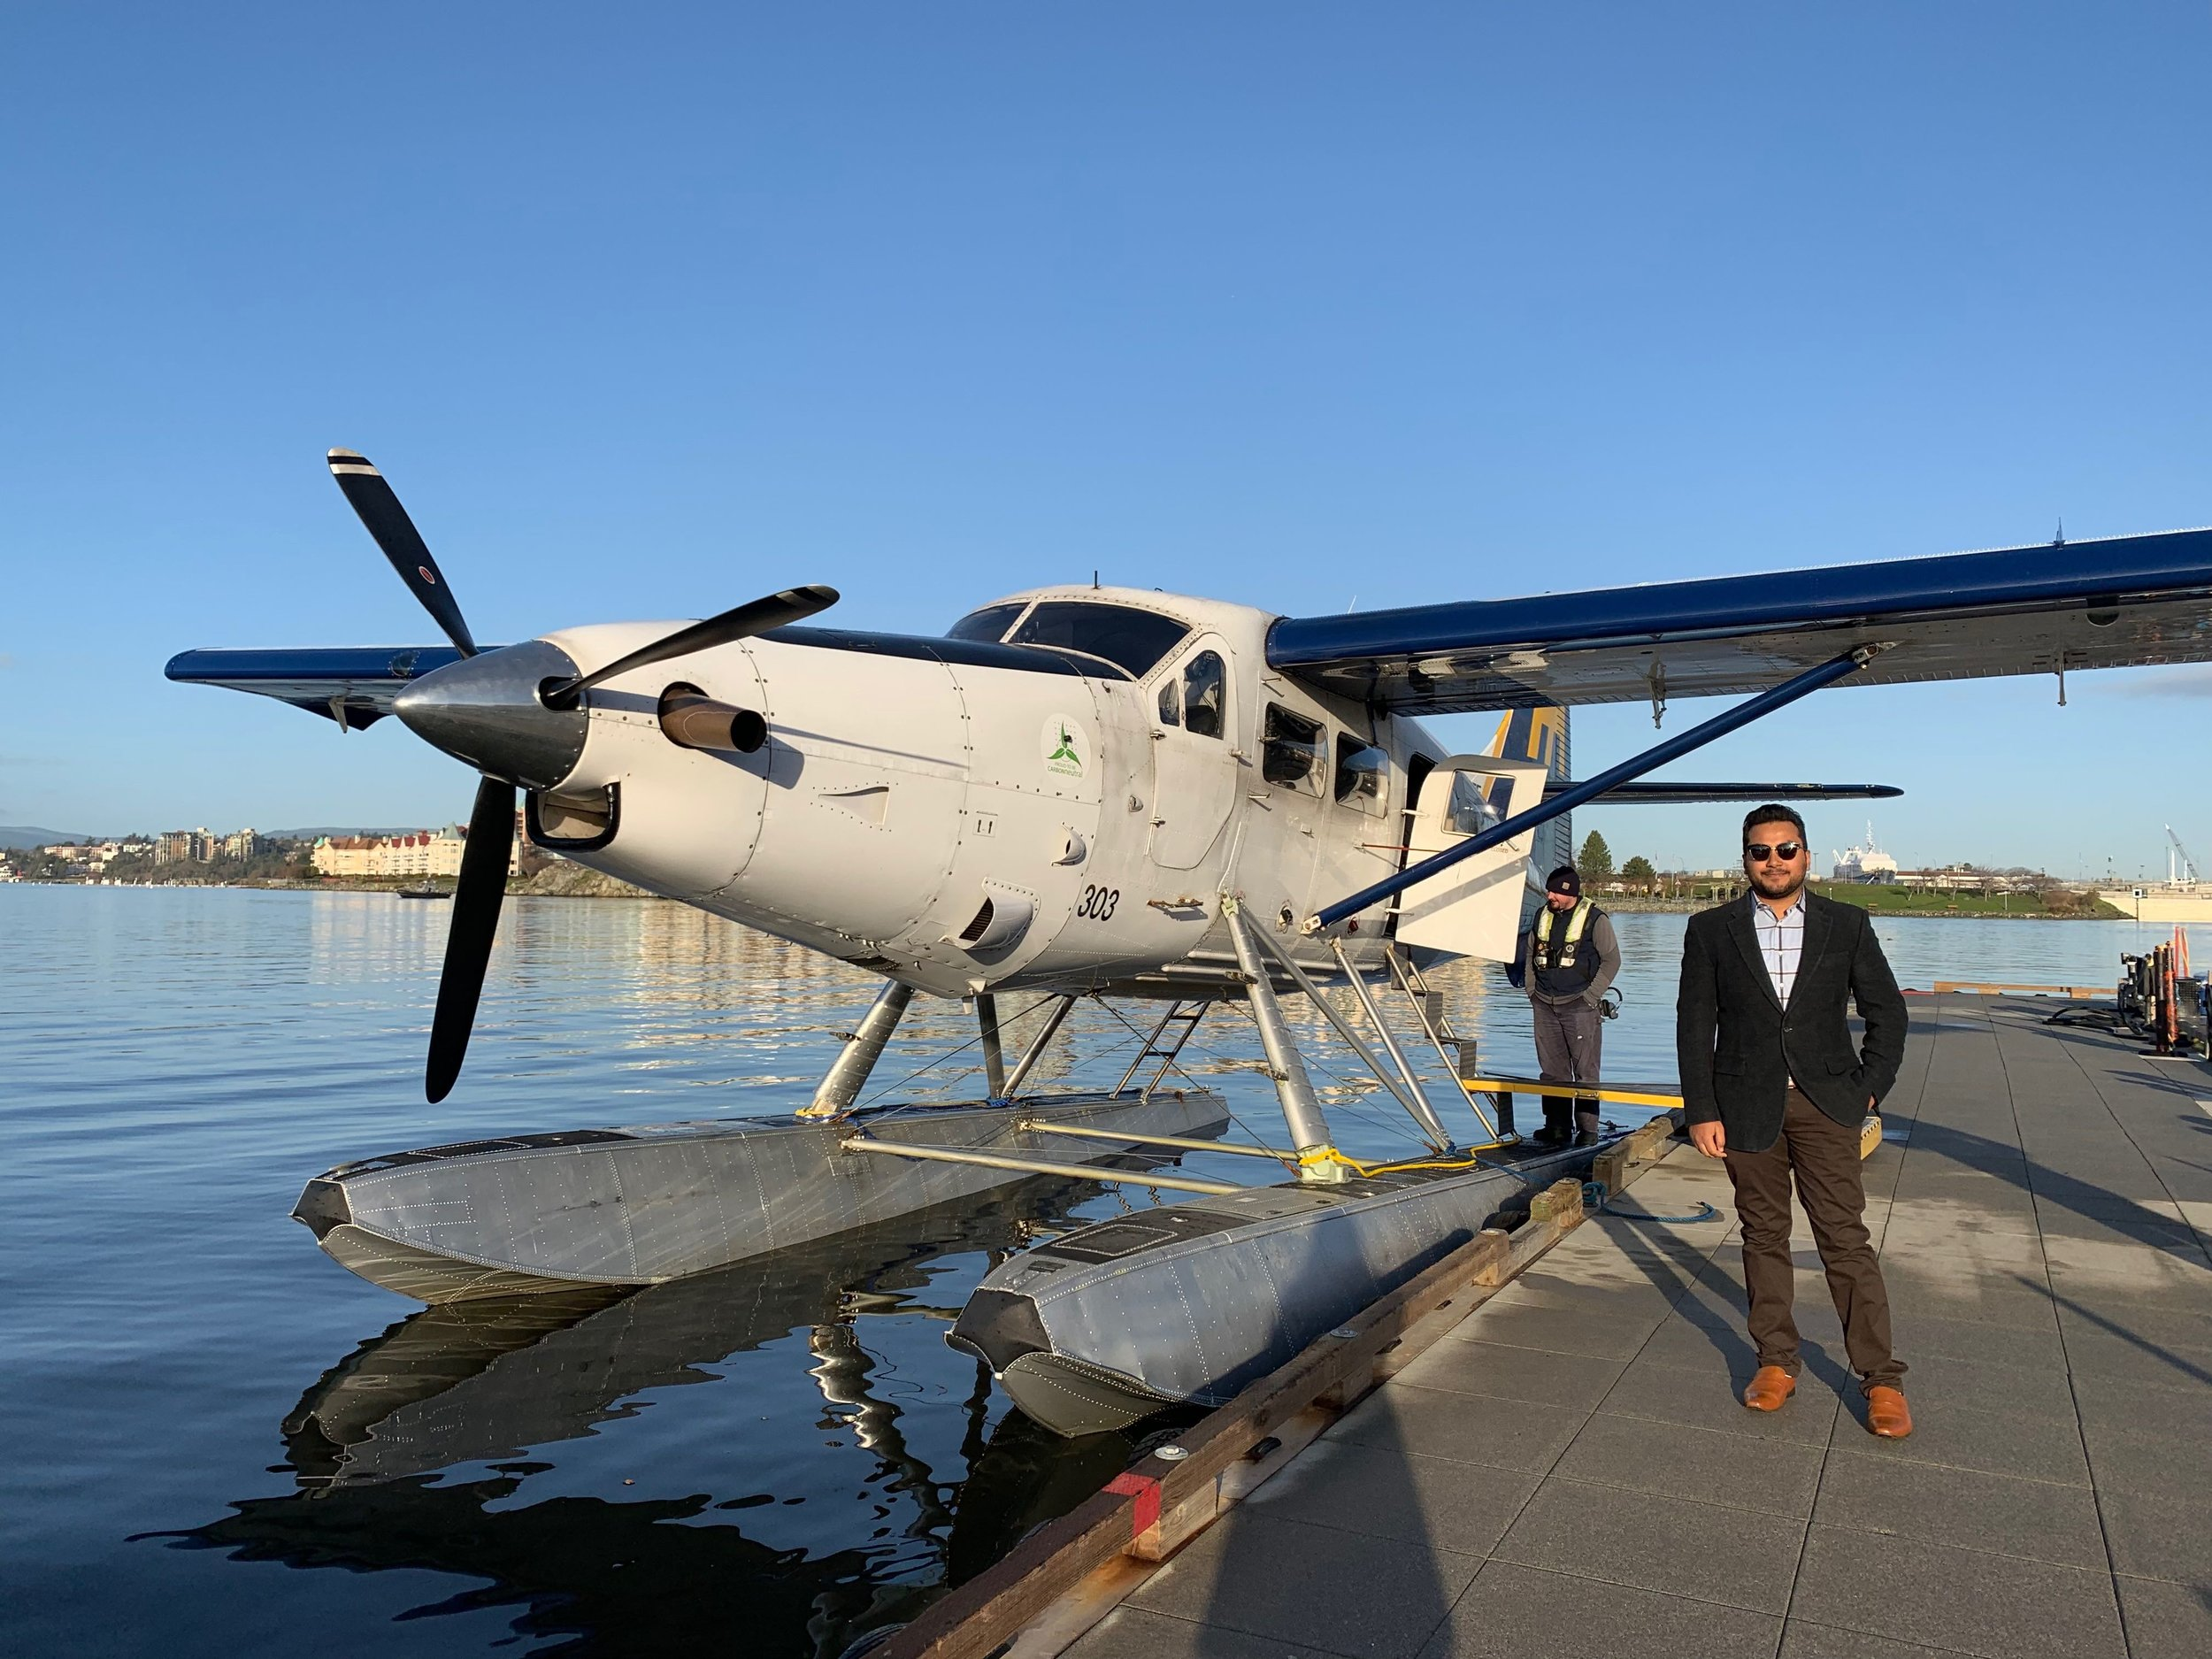 iOS developer Tushar on the way to Vancouver to meet with Harbour Air to discuss progress.